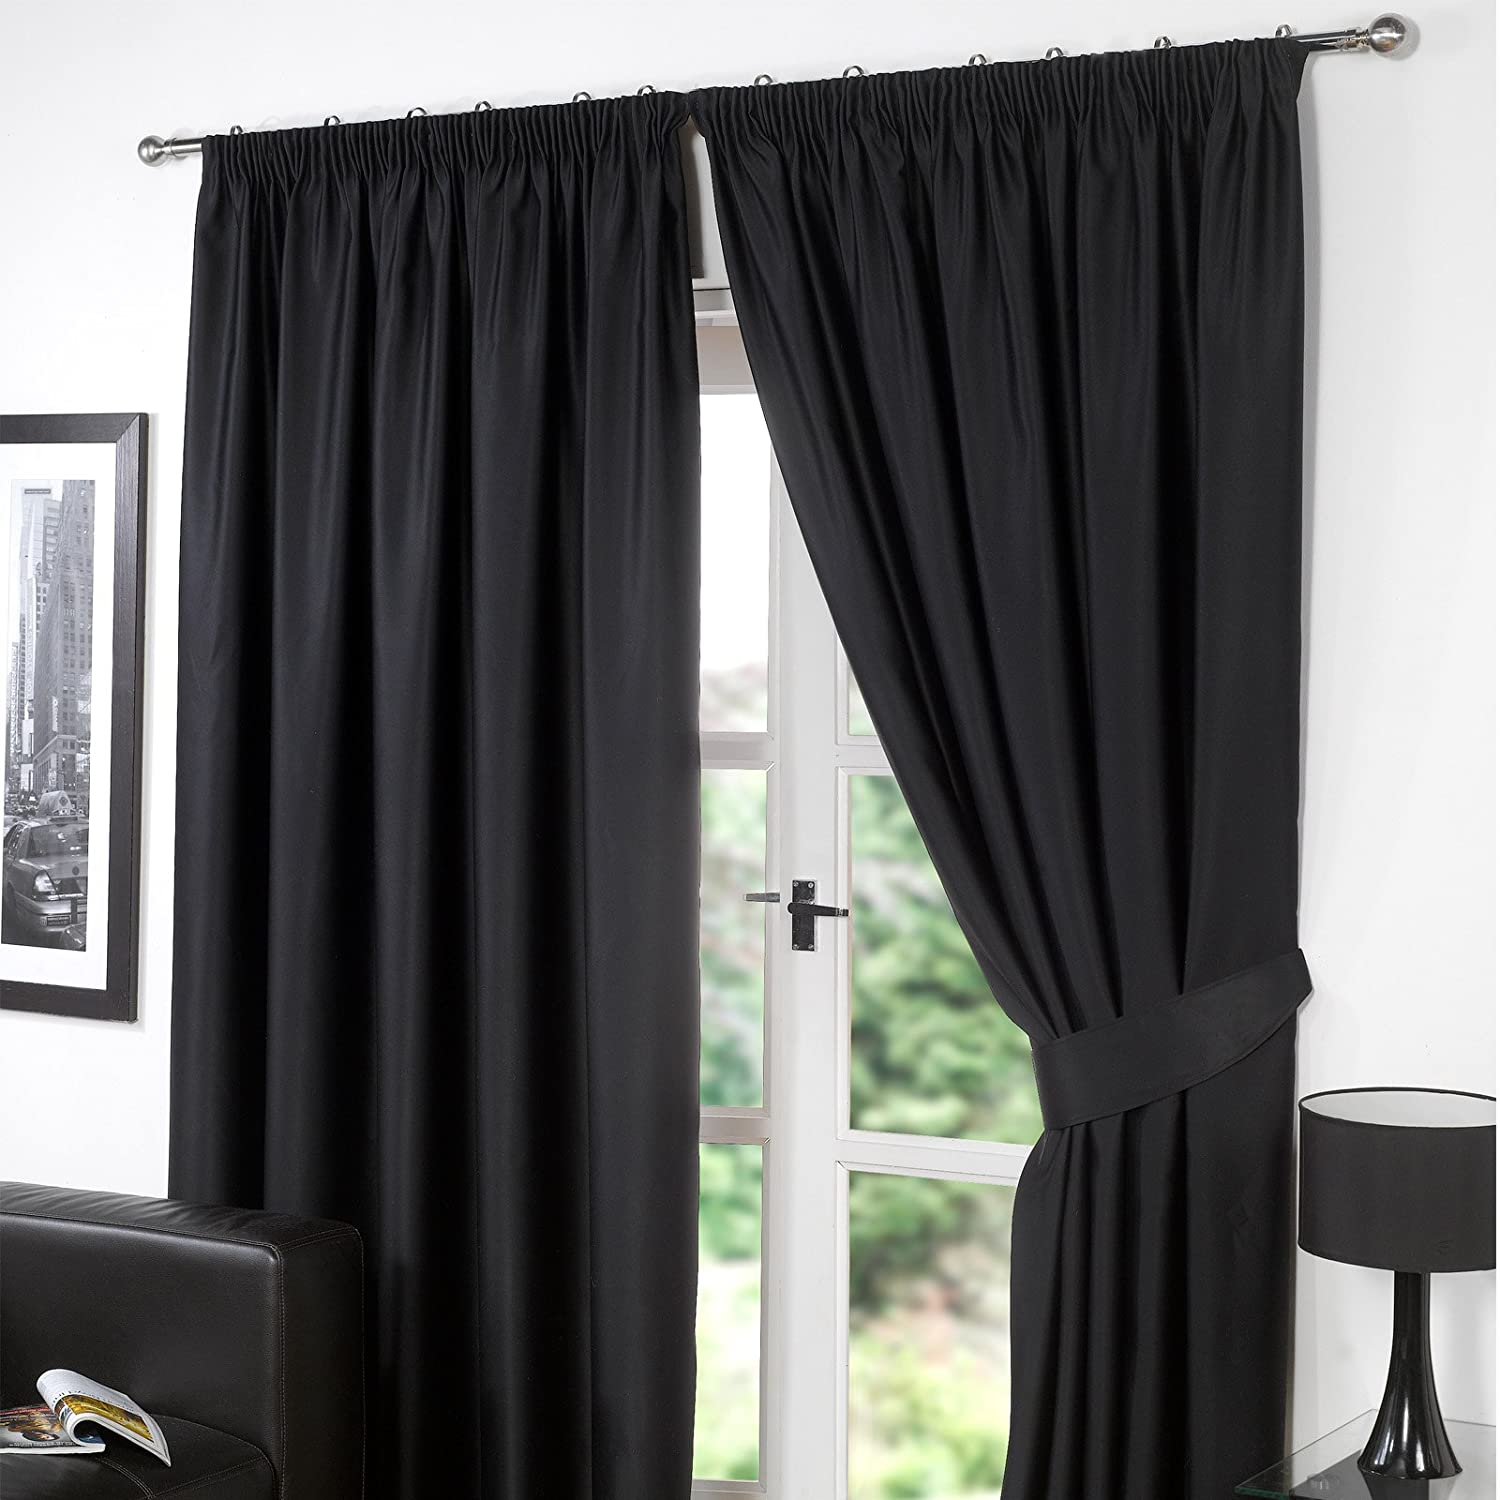 Dreamscene Pencil Pleat Blackout Curtains Set of 2 Thermal Tape Top Heading Panels Ready Made, Black - Width 46